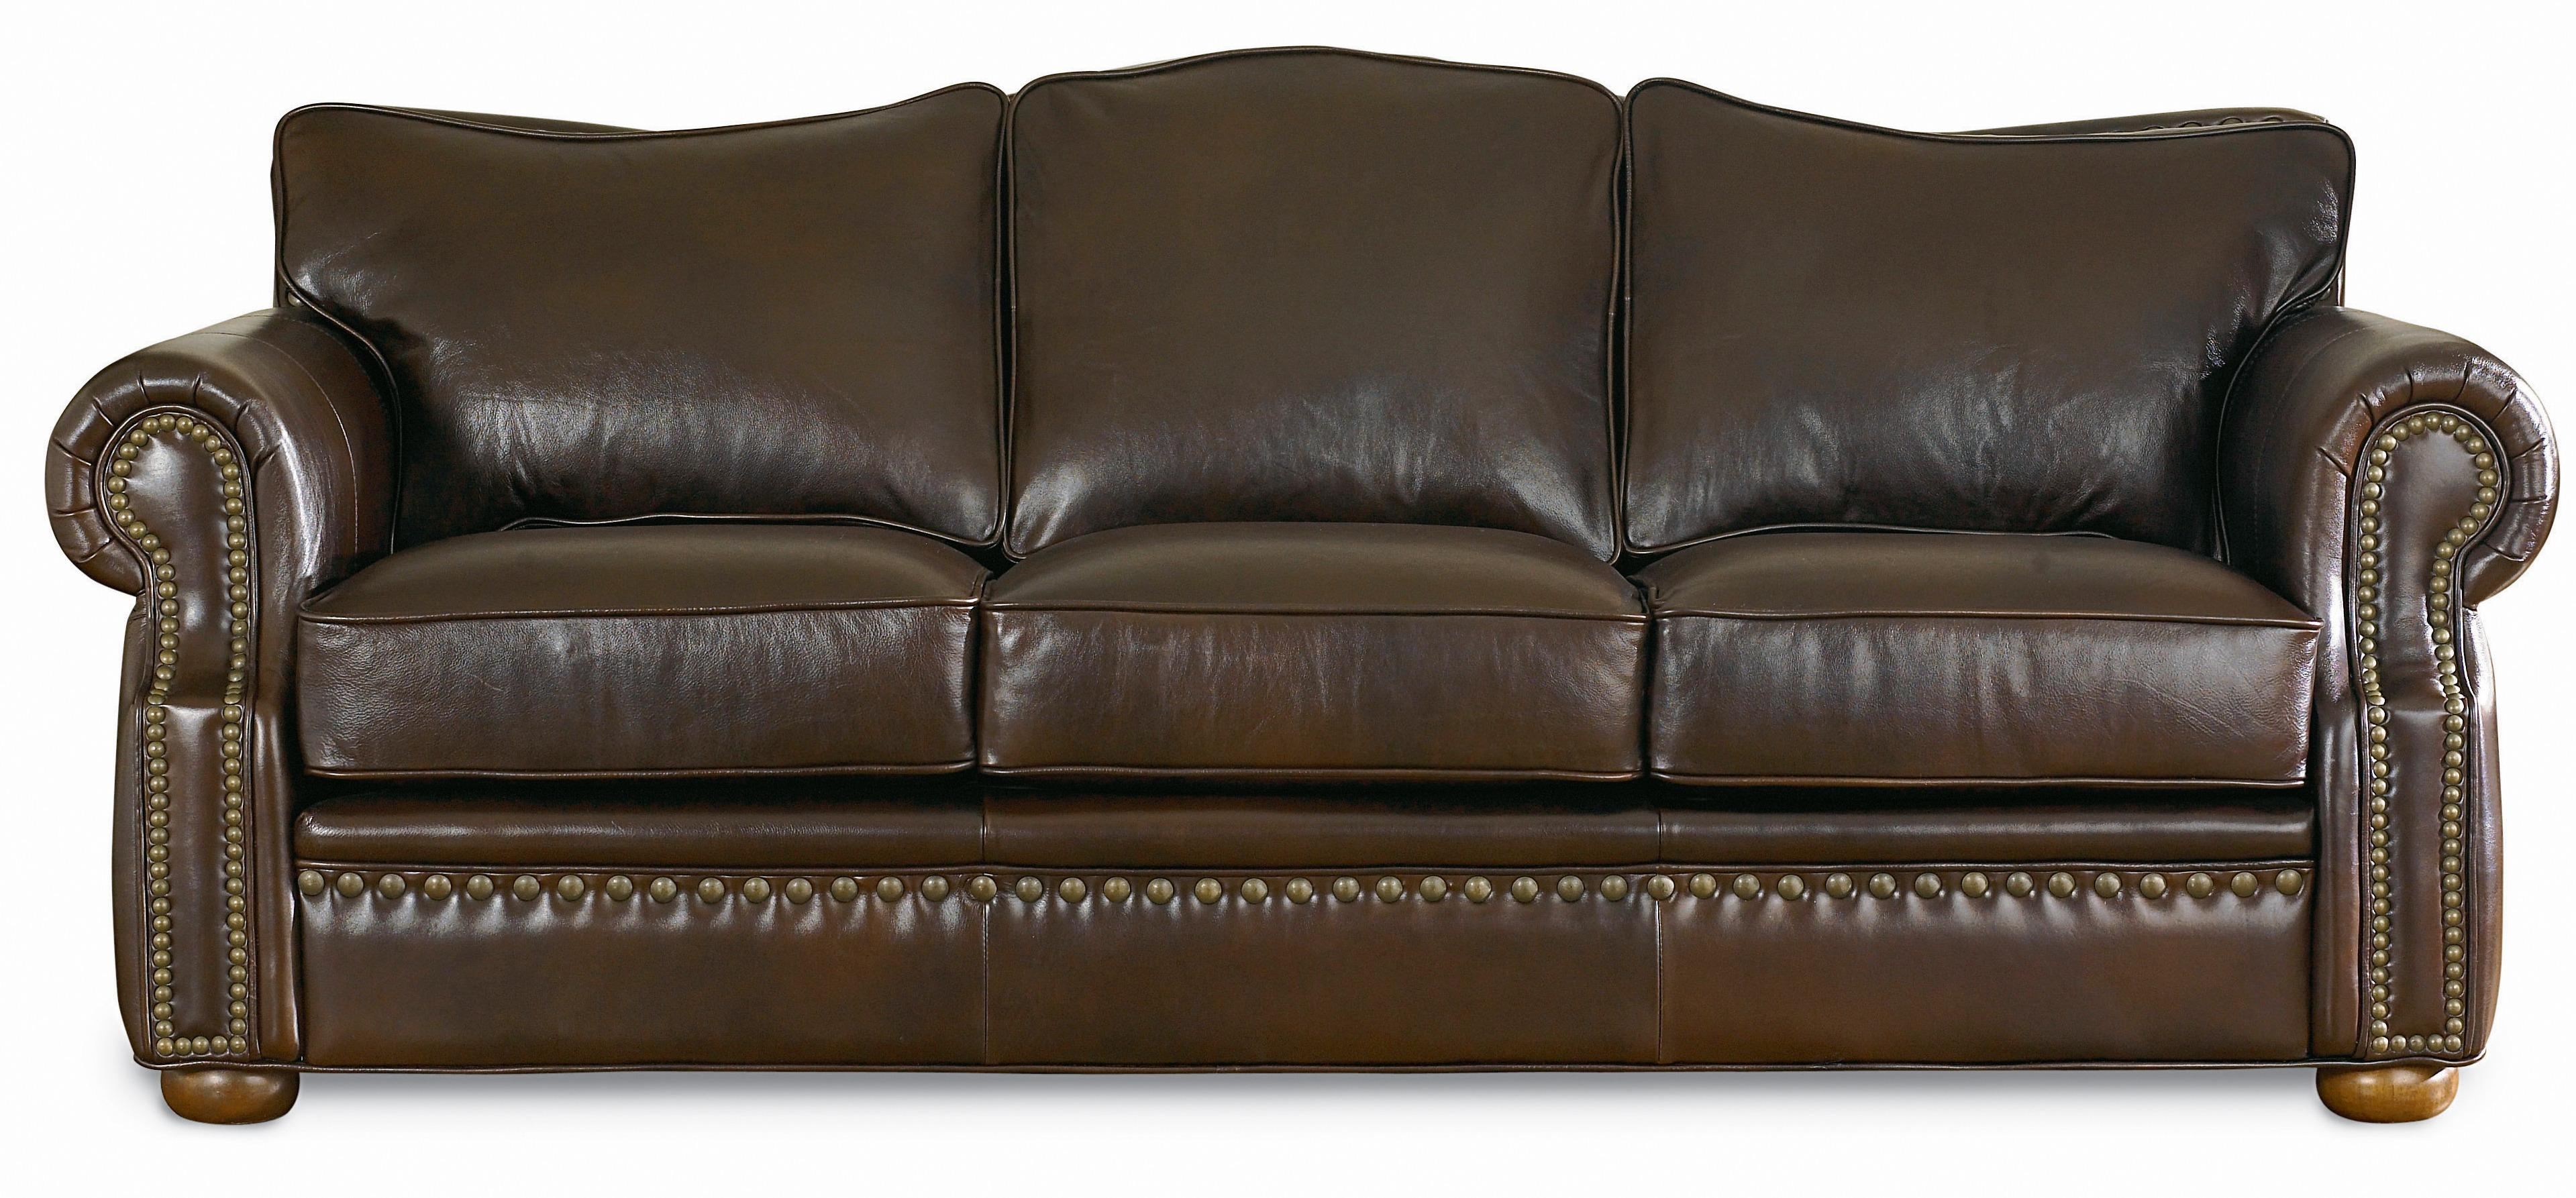 Overstuffed Leather Chair And Ottoman Overstuffed Leather Furniture Furniture Designs